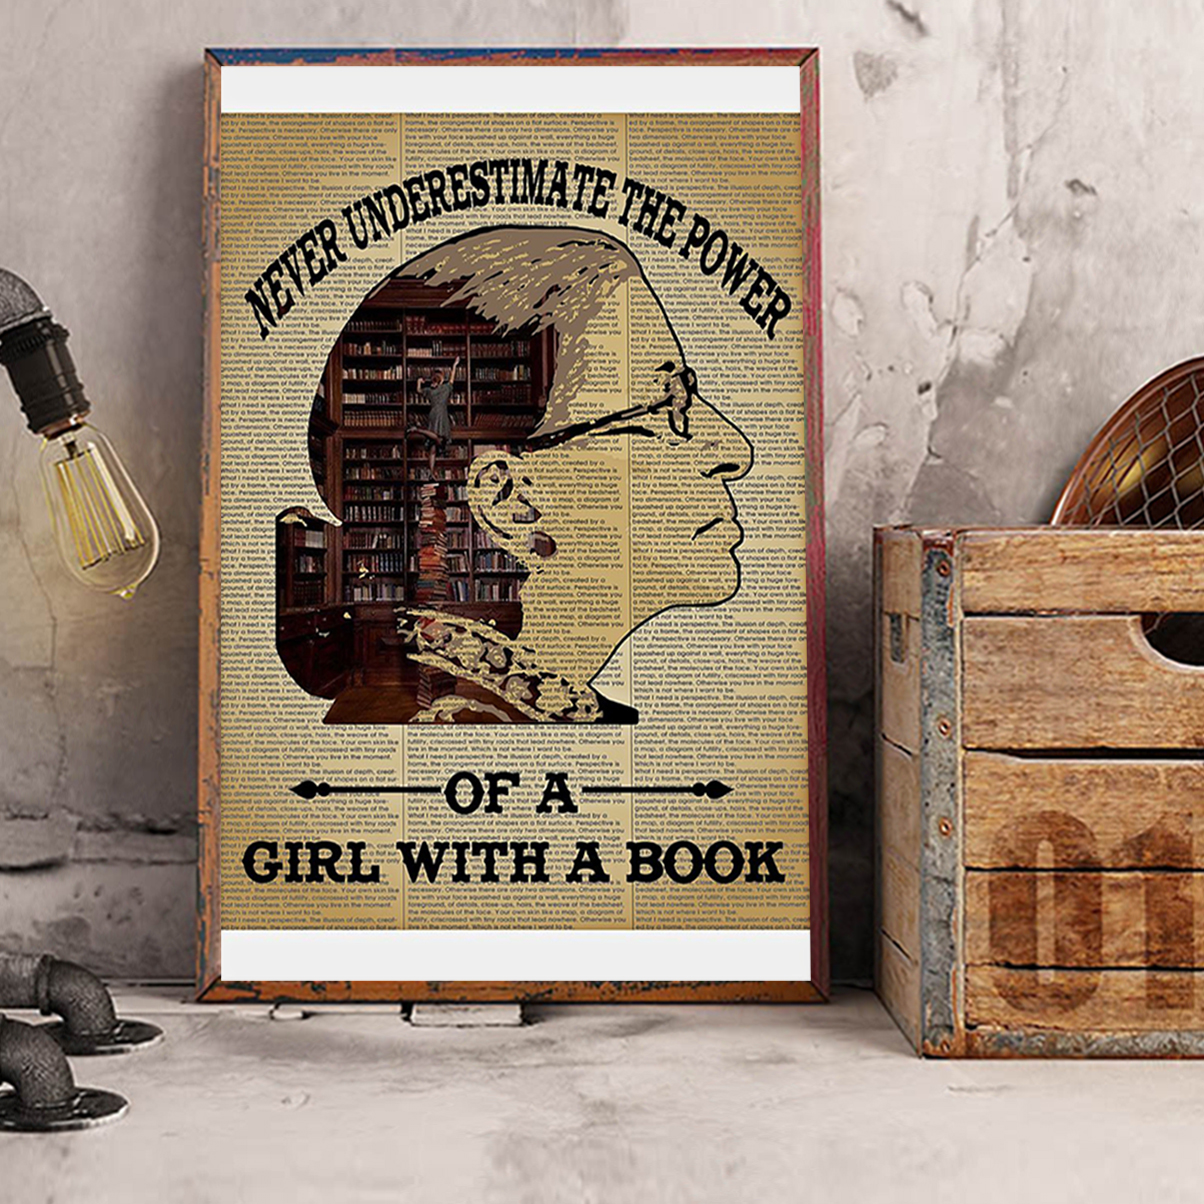 Ruth bader ginsburg never underestimate the power of a girl with a book poster A3